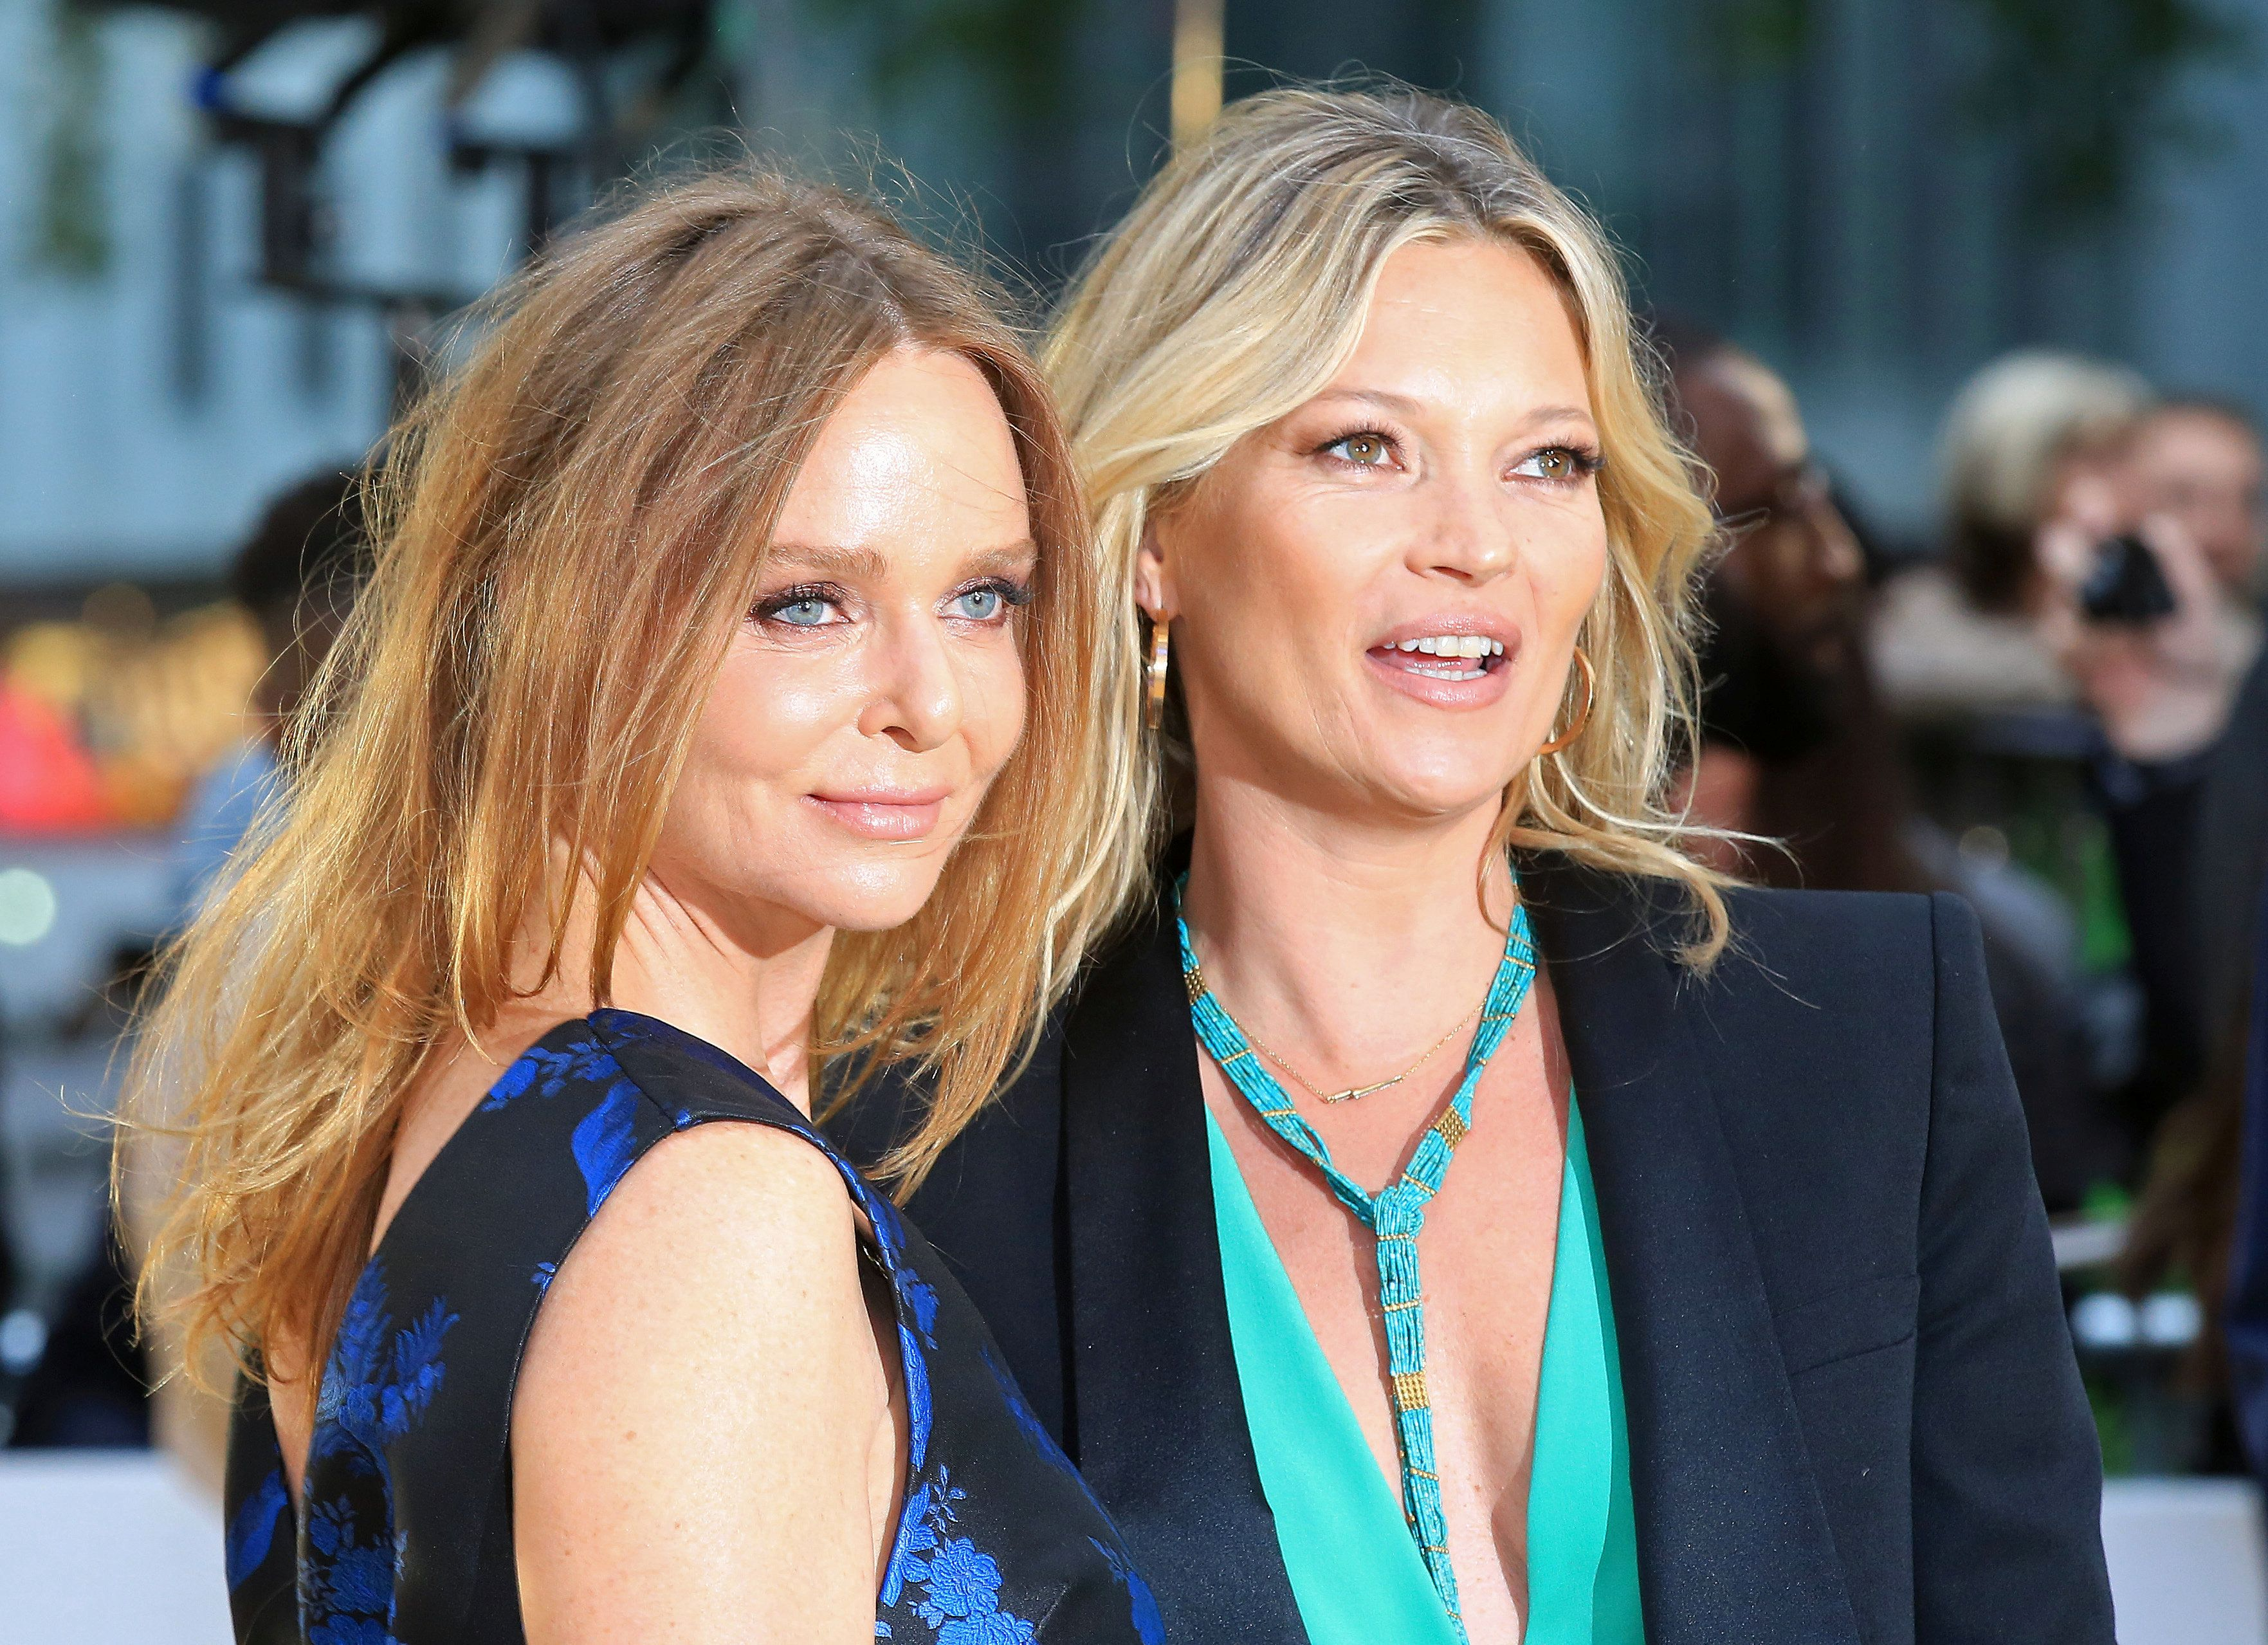 Stella McCartney 'Very Apologetic' Over Taxi Cab Crash, But Felt